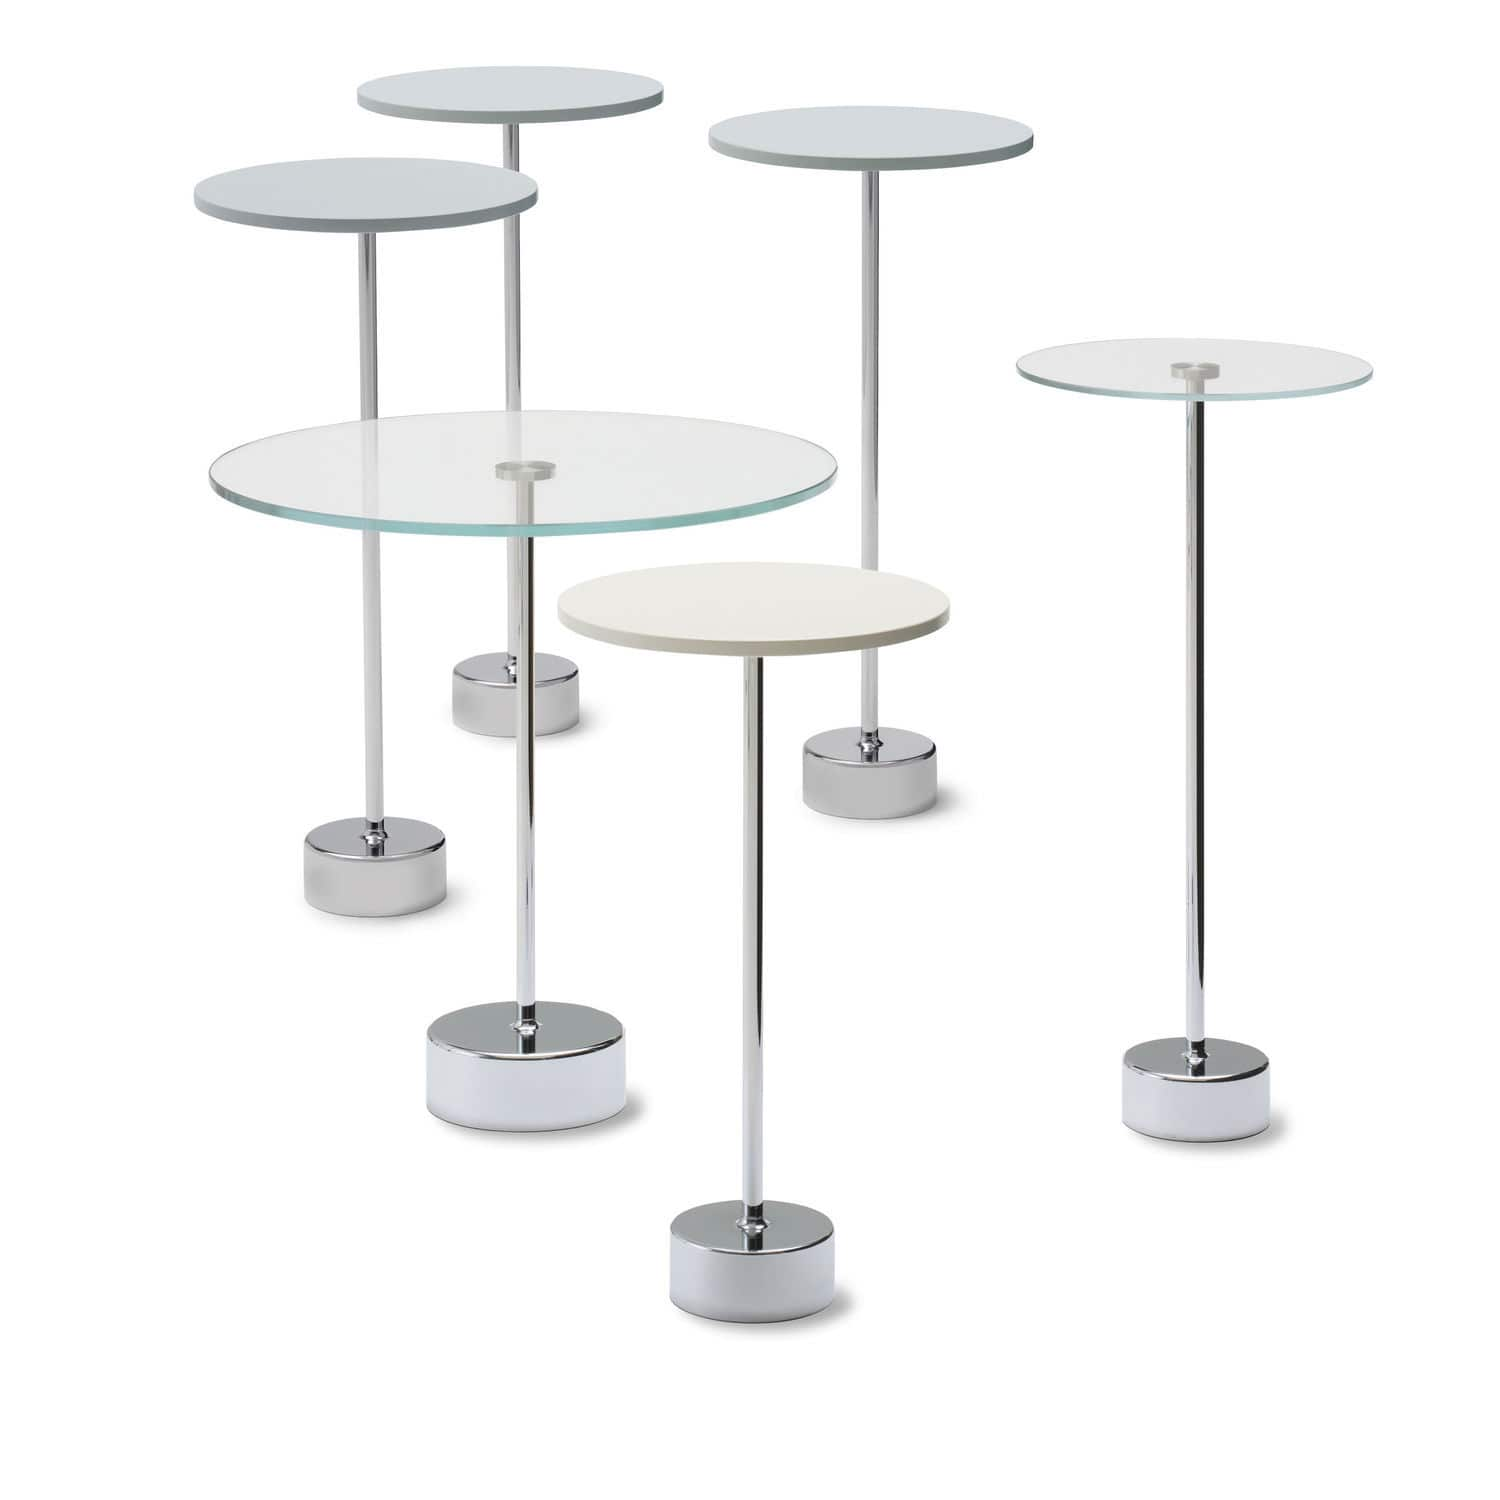 Glass Round Side Table Side Table Contemporary Glass Round Tablo Cor